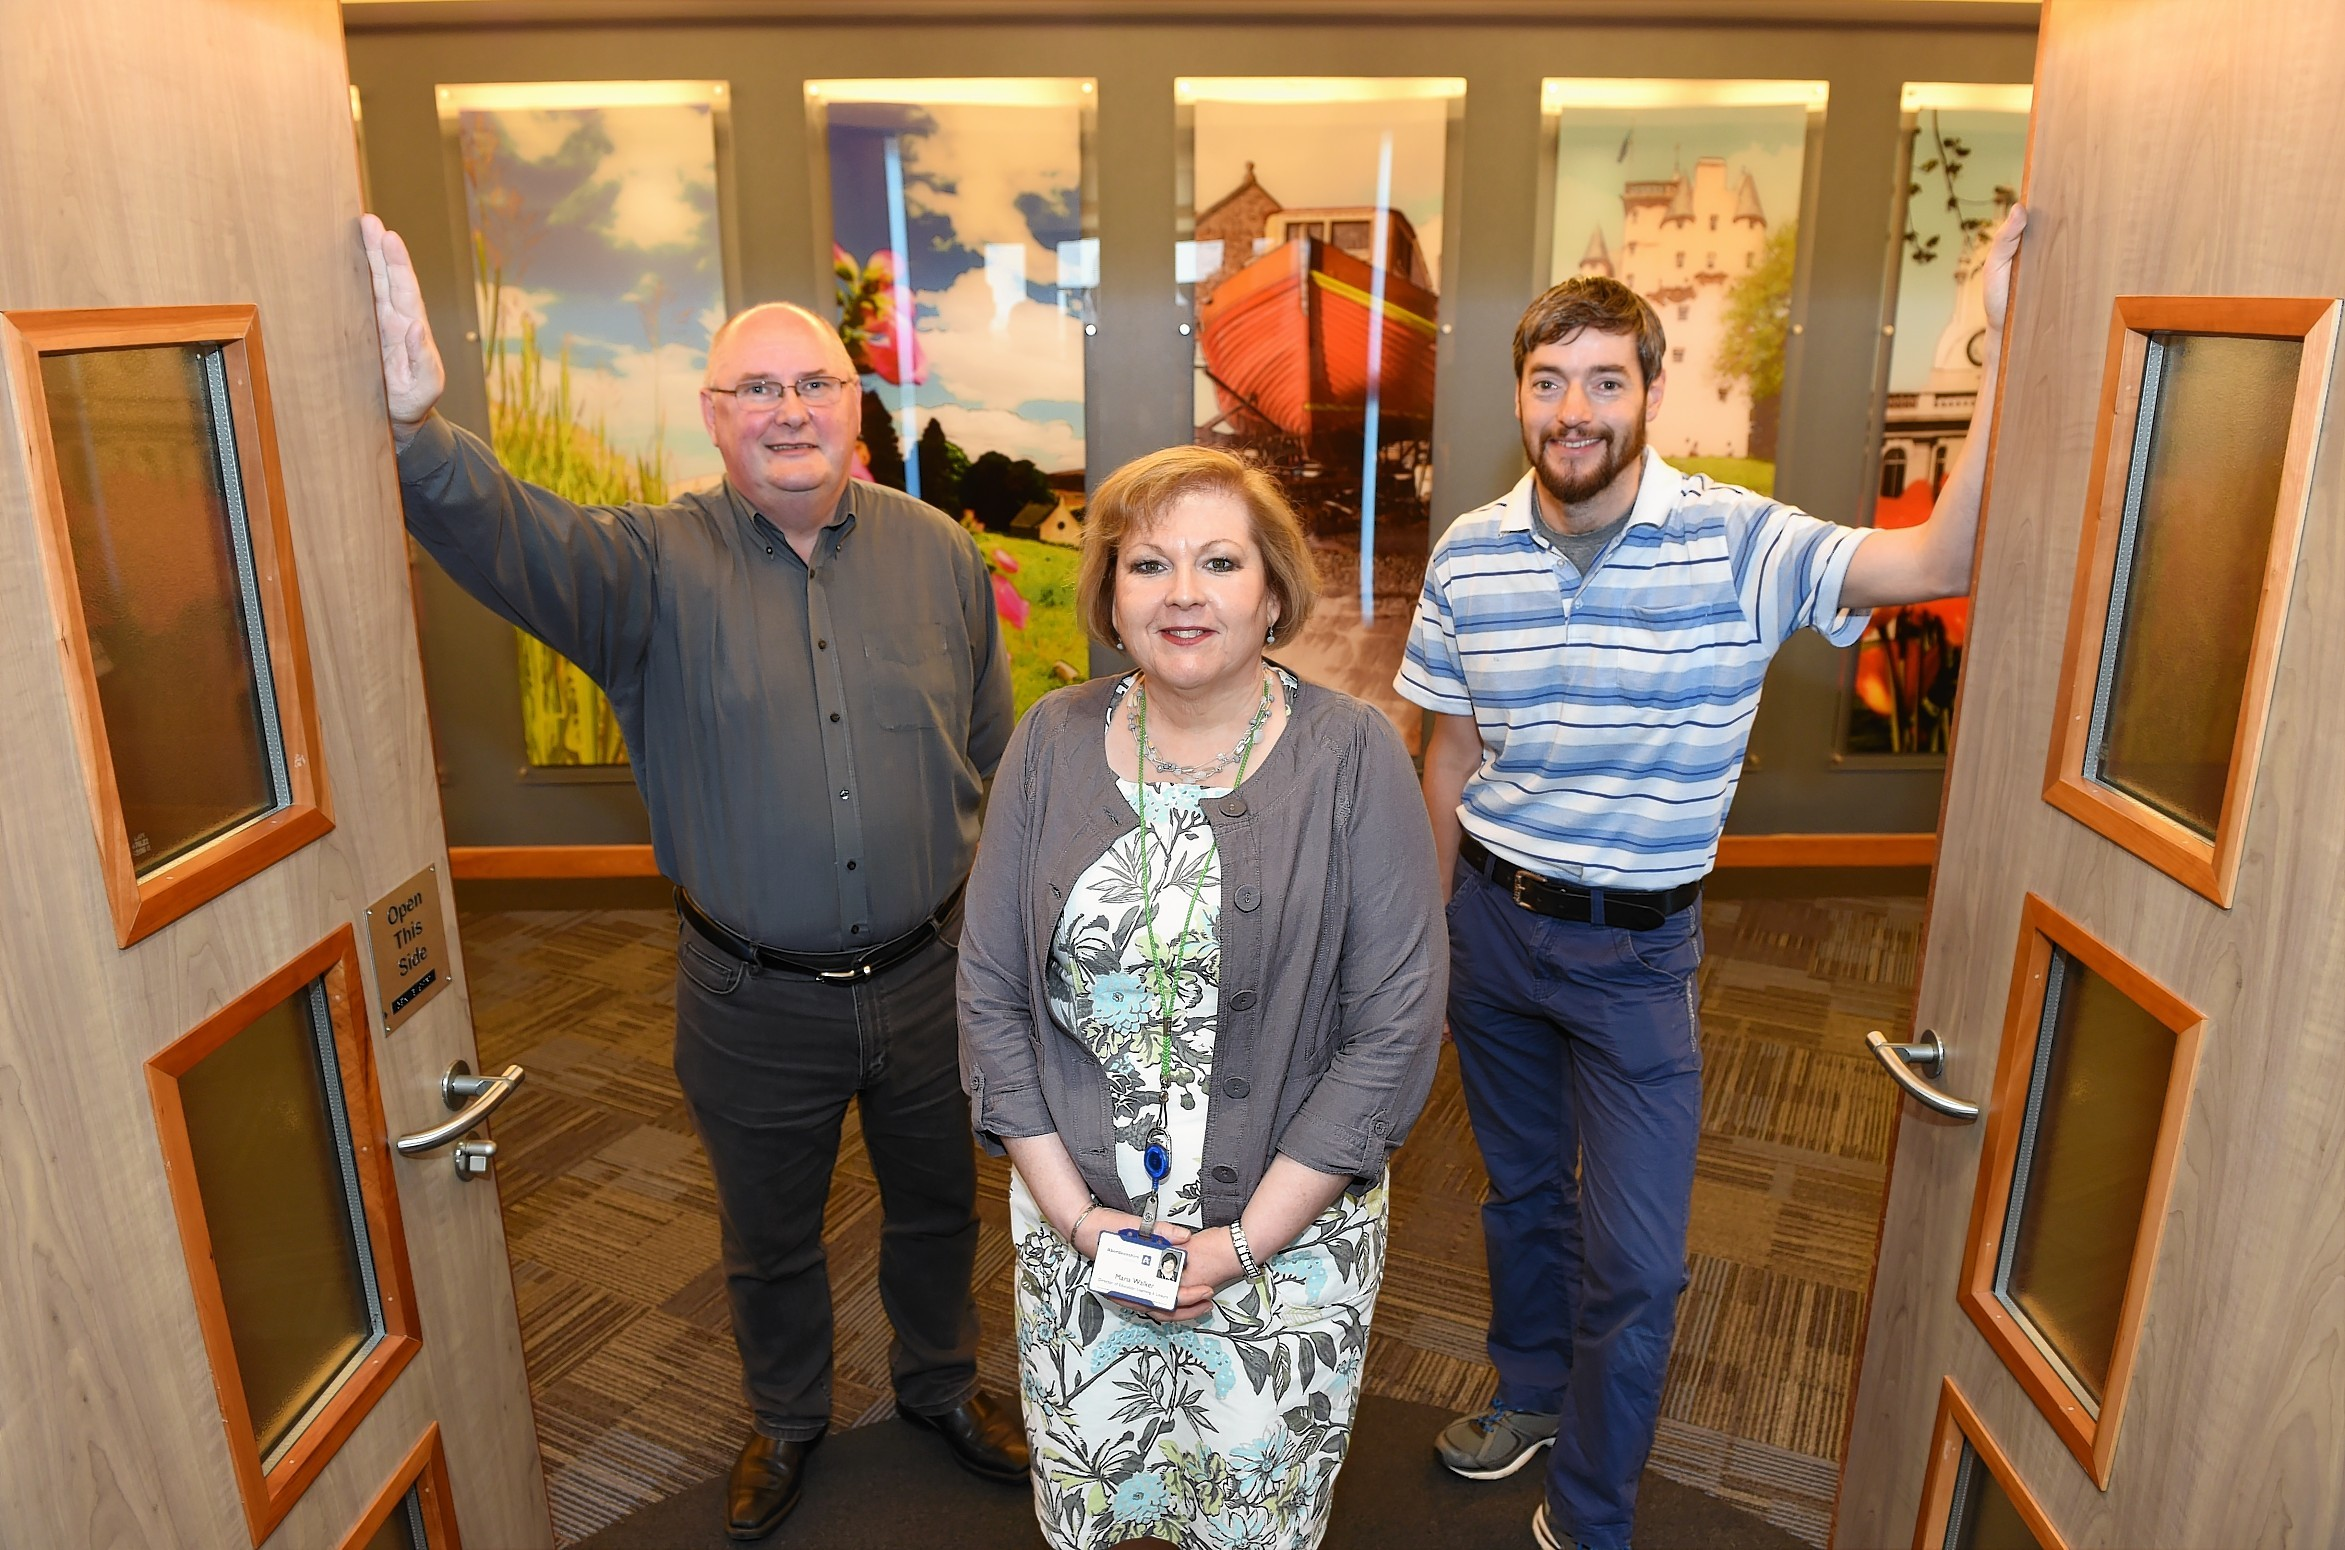 Ex-oil and gas workers Bob Forsyth (left) and Russell Bolton with Maria Walker, Director of Education and Children's Services at Aberdeenshire Council, attending an induction event for new teachers.